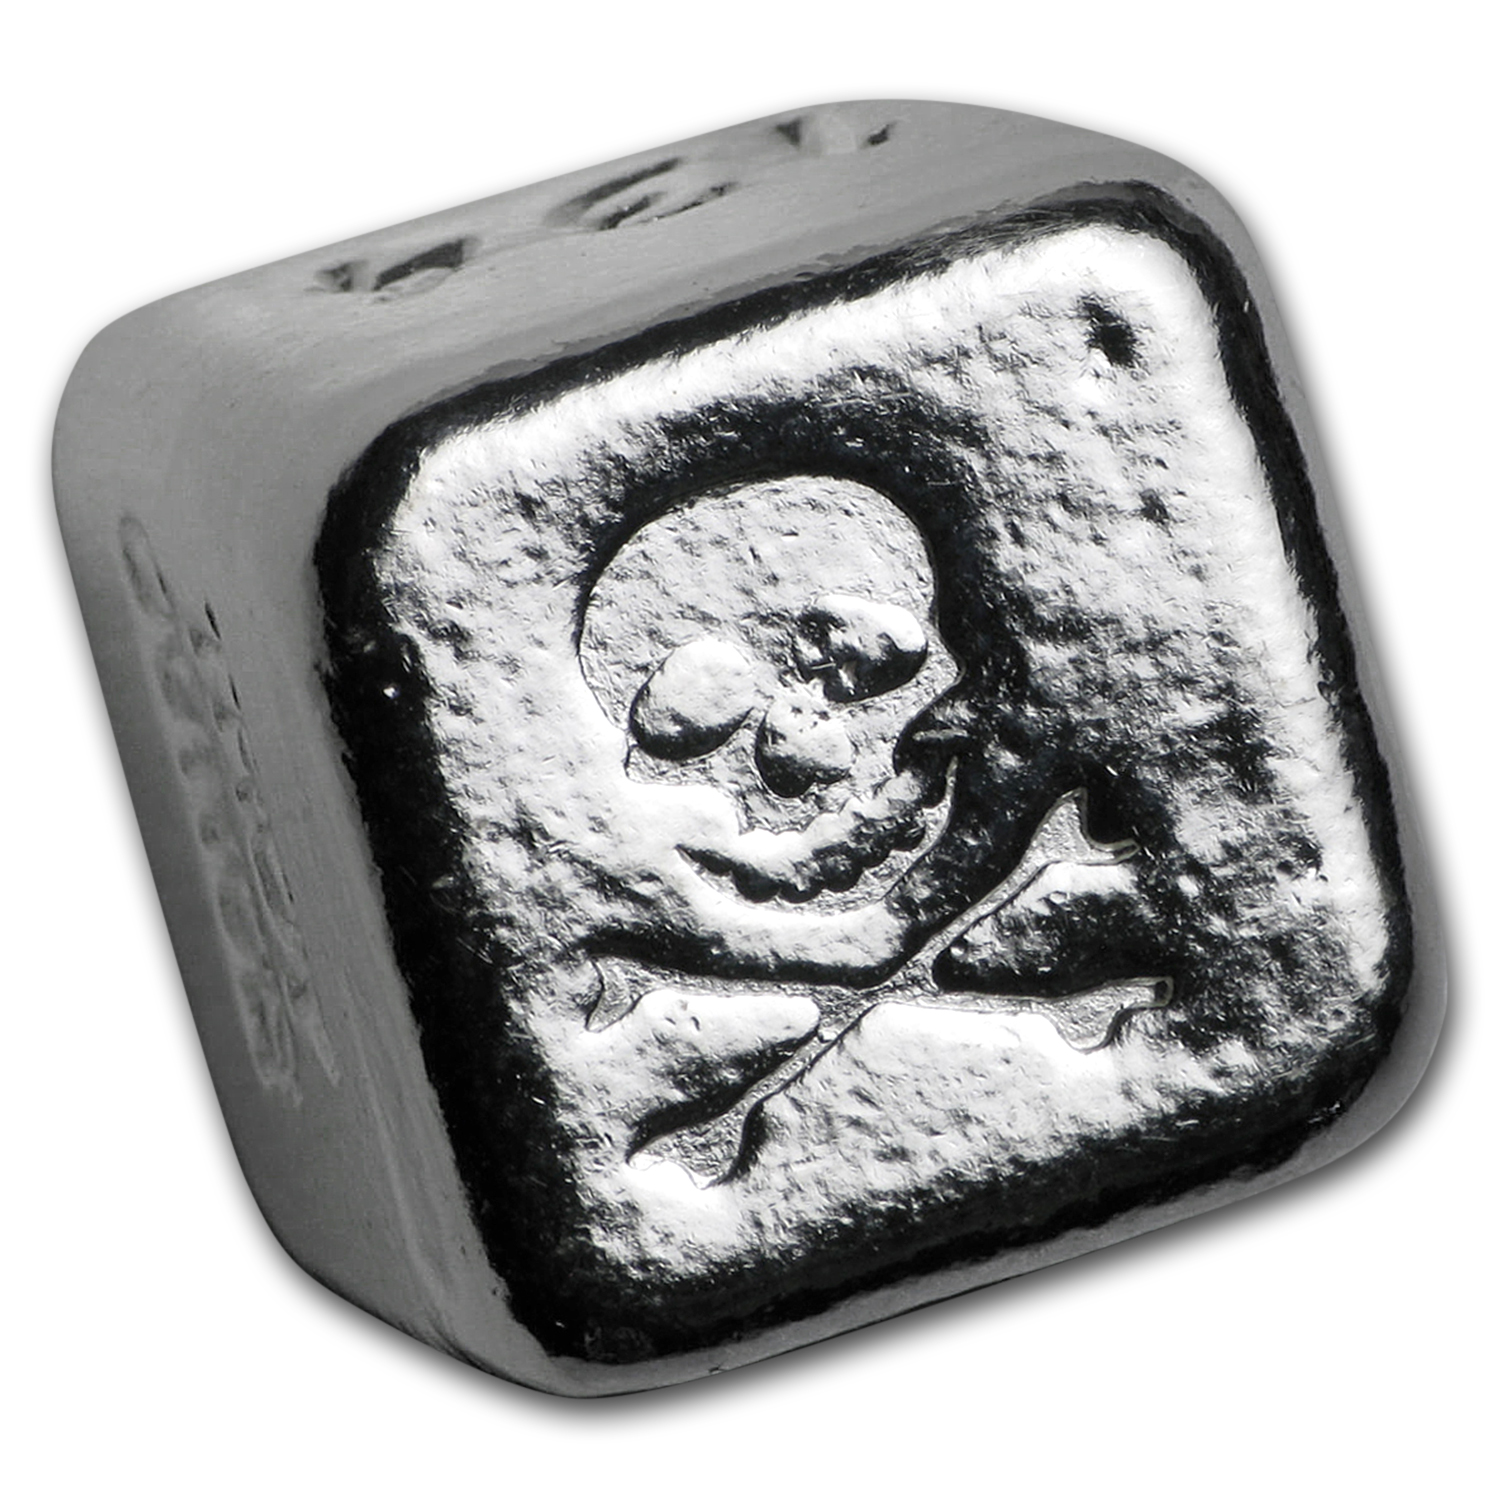 1 oz Silver Cube - Yeager Poured Silver (Skull and Crossbones)